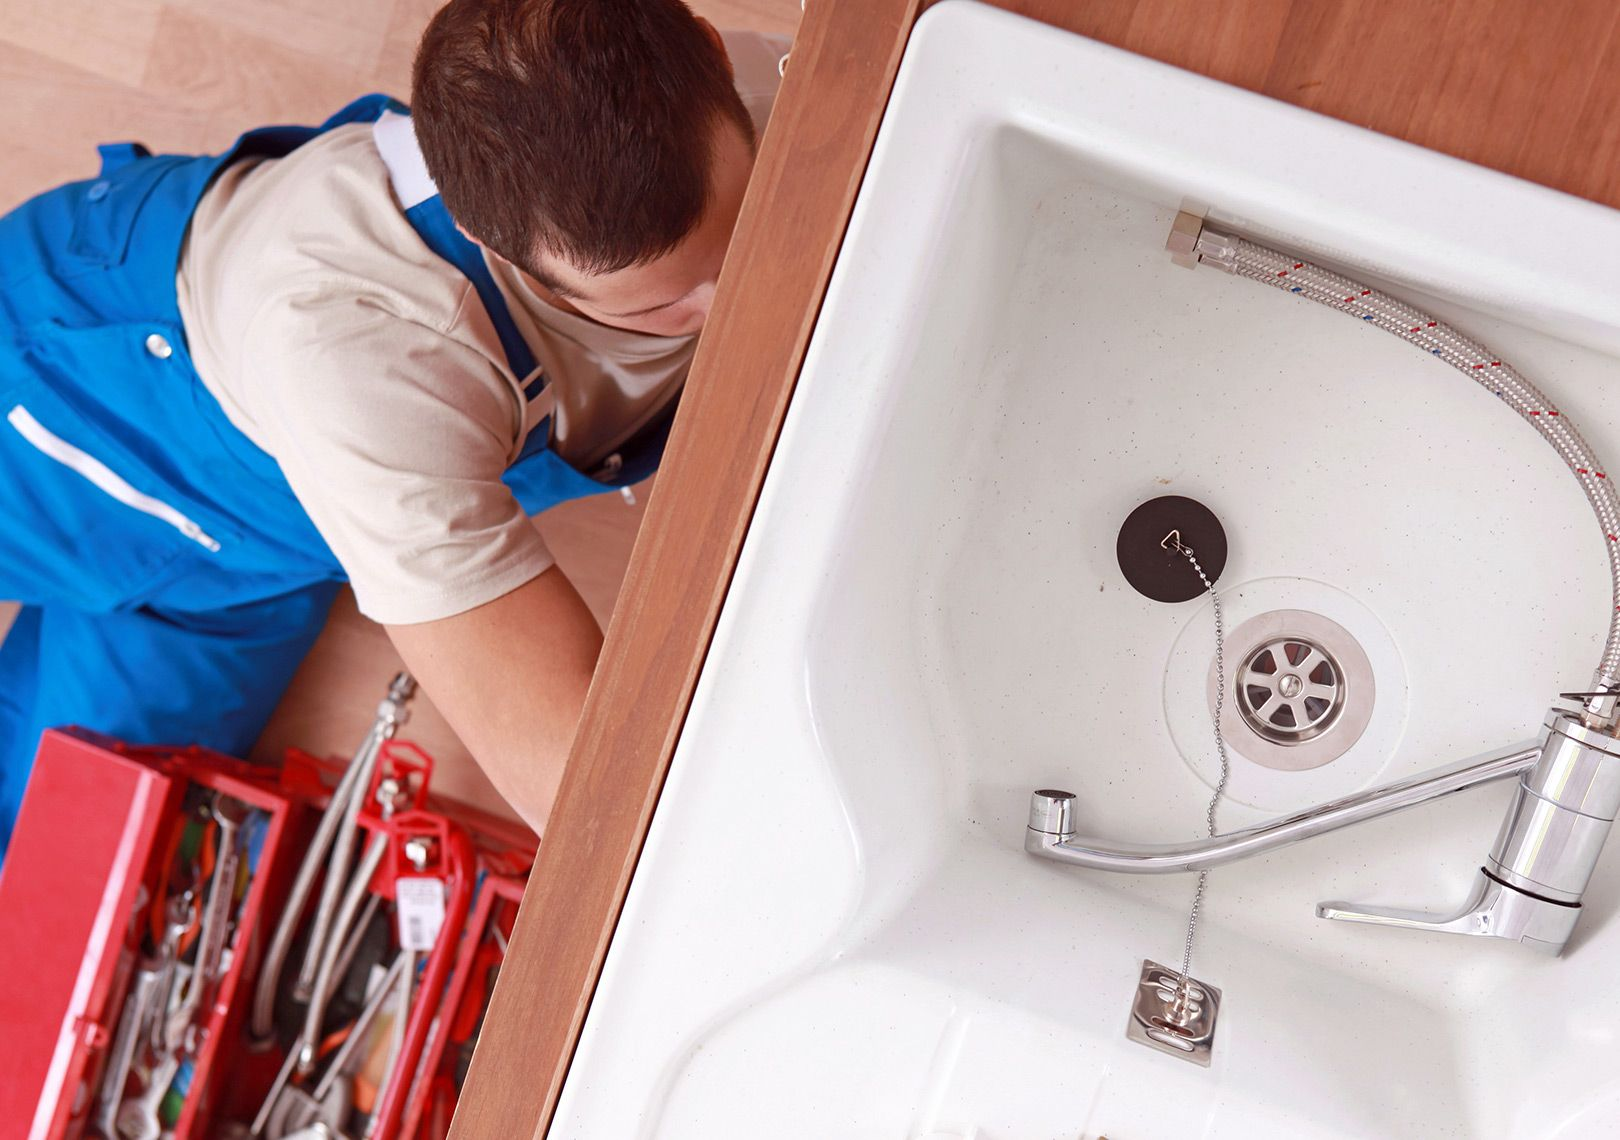 1 Plumber In Indianapolis We At Acme Plumbing Are Committed To Delivering Professional Plumbing And Septic Tank Pumping Service In Drain Repair Plumbing Sink